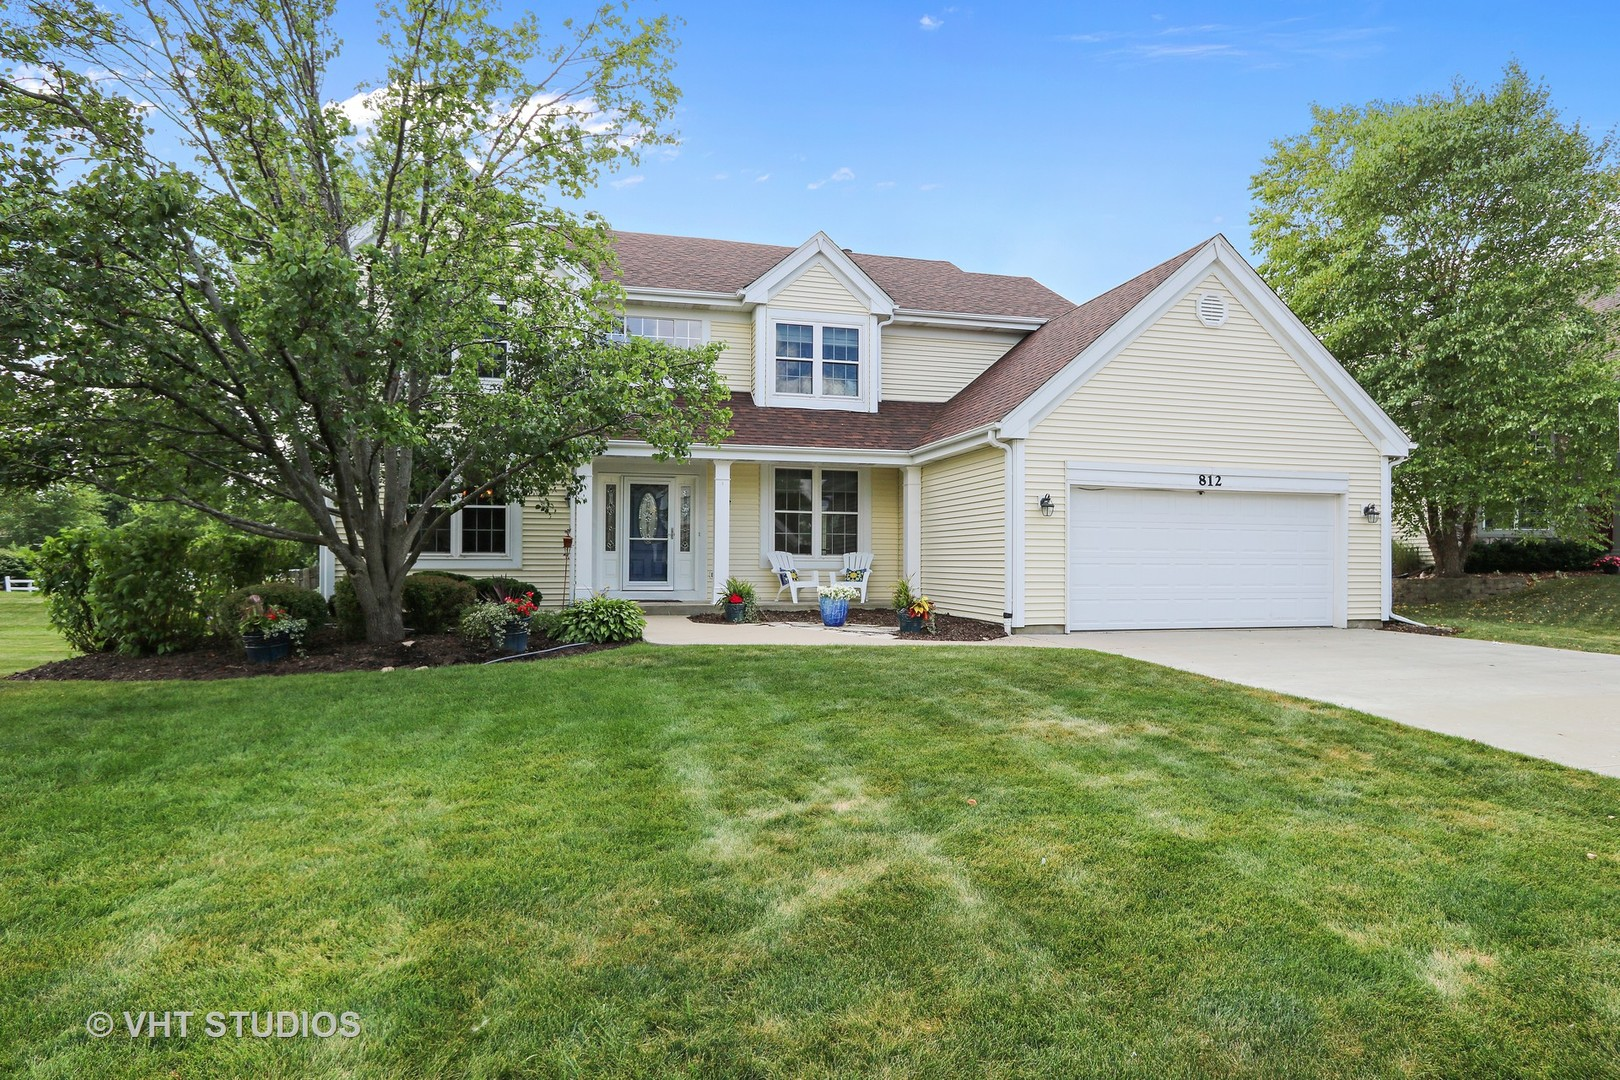 812 Foxmoor Lane, Lake Zurich in Lake County, IL 60047 Home for Sale